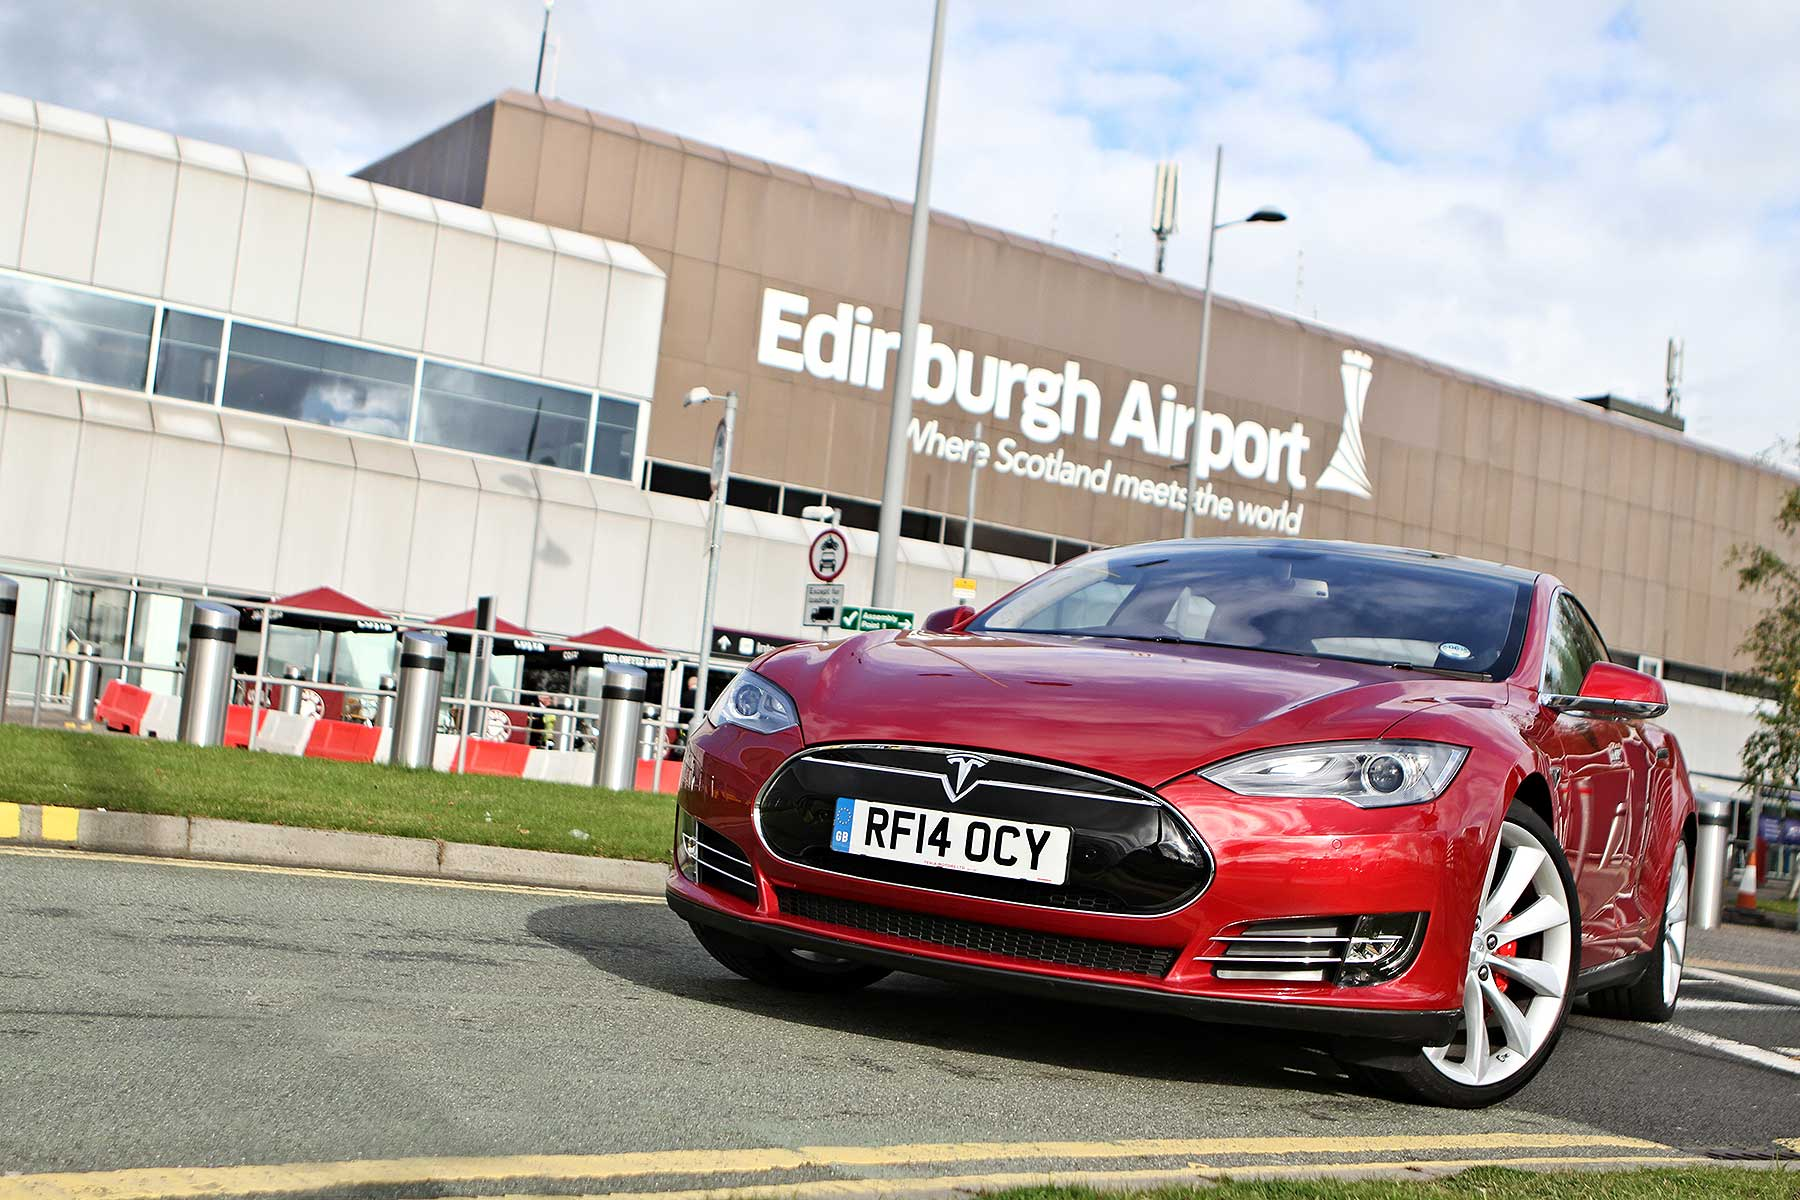 Tesla at Edinburgh Airport